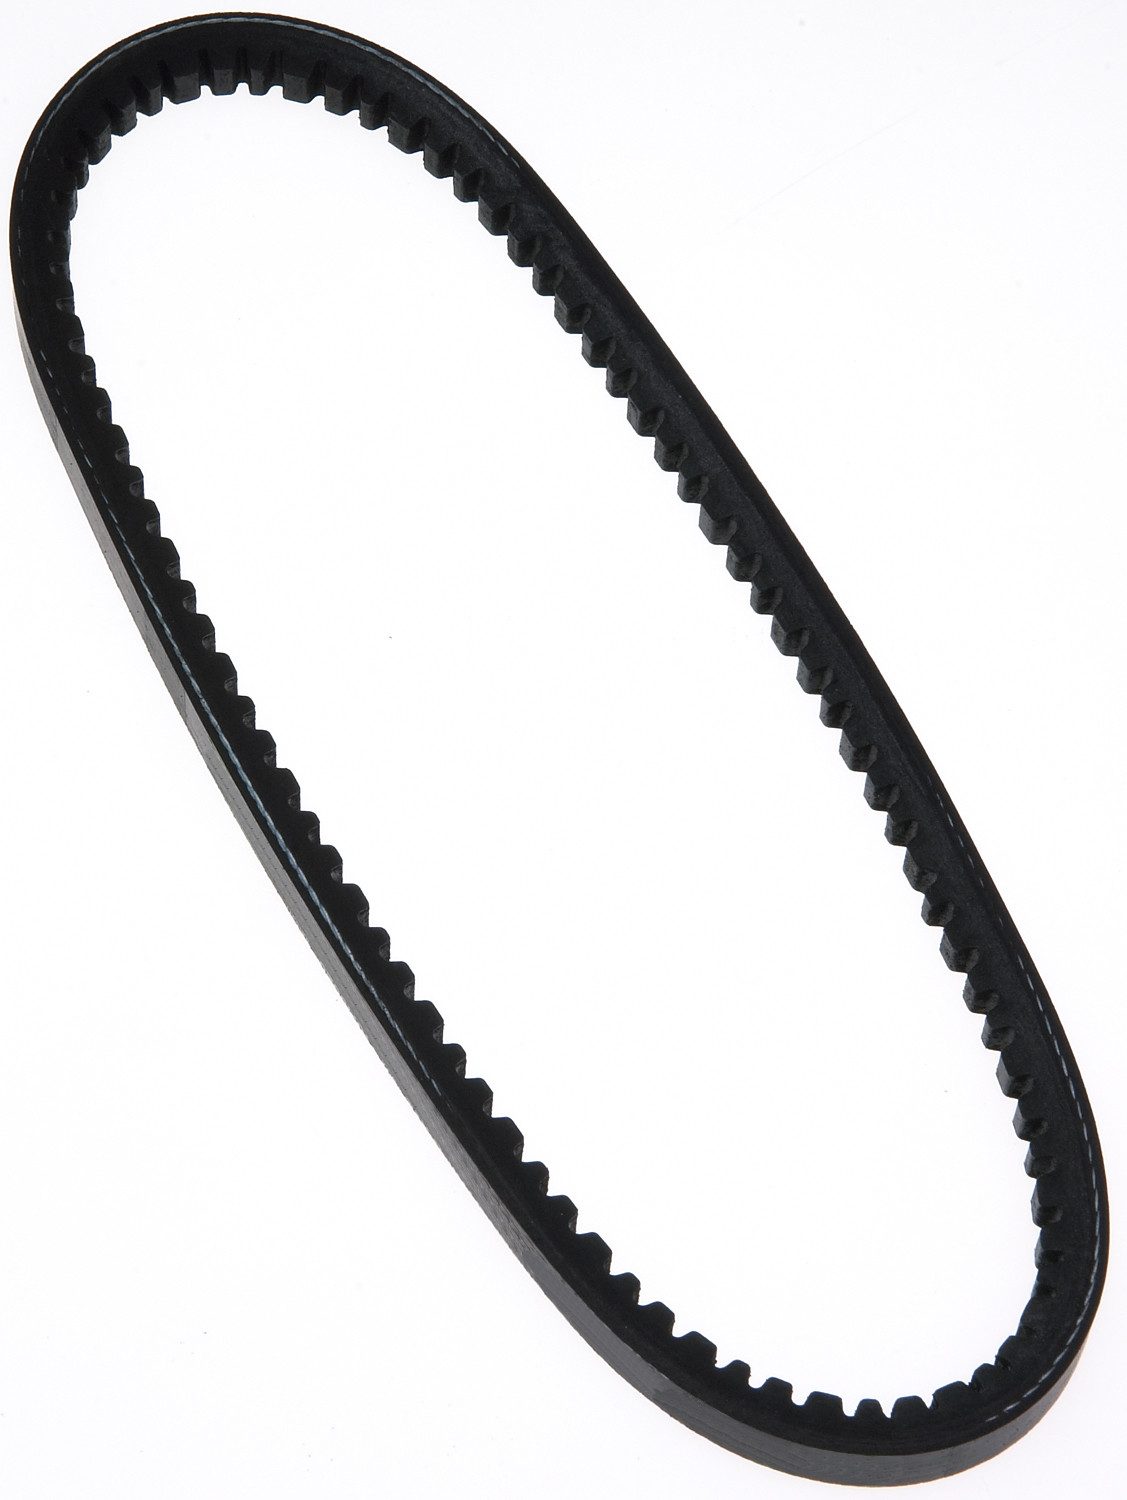 ROADMAX - High Capacity V-belt(standard) - RMX 17455AP